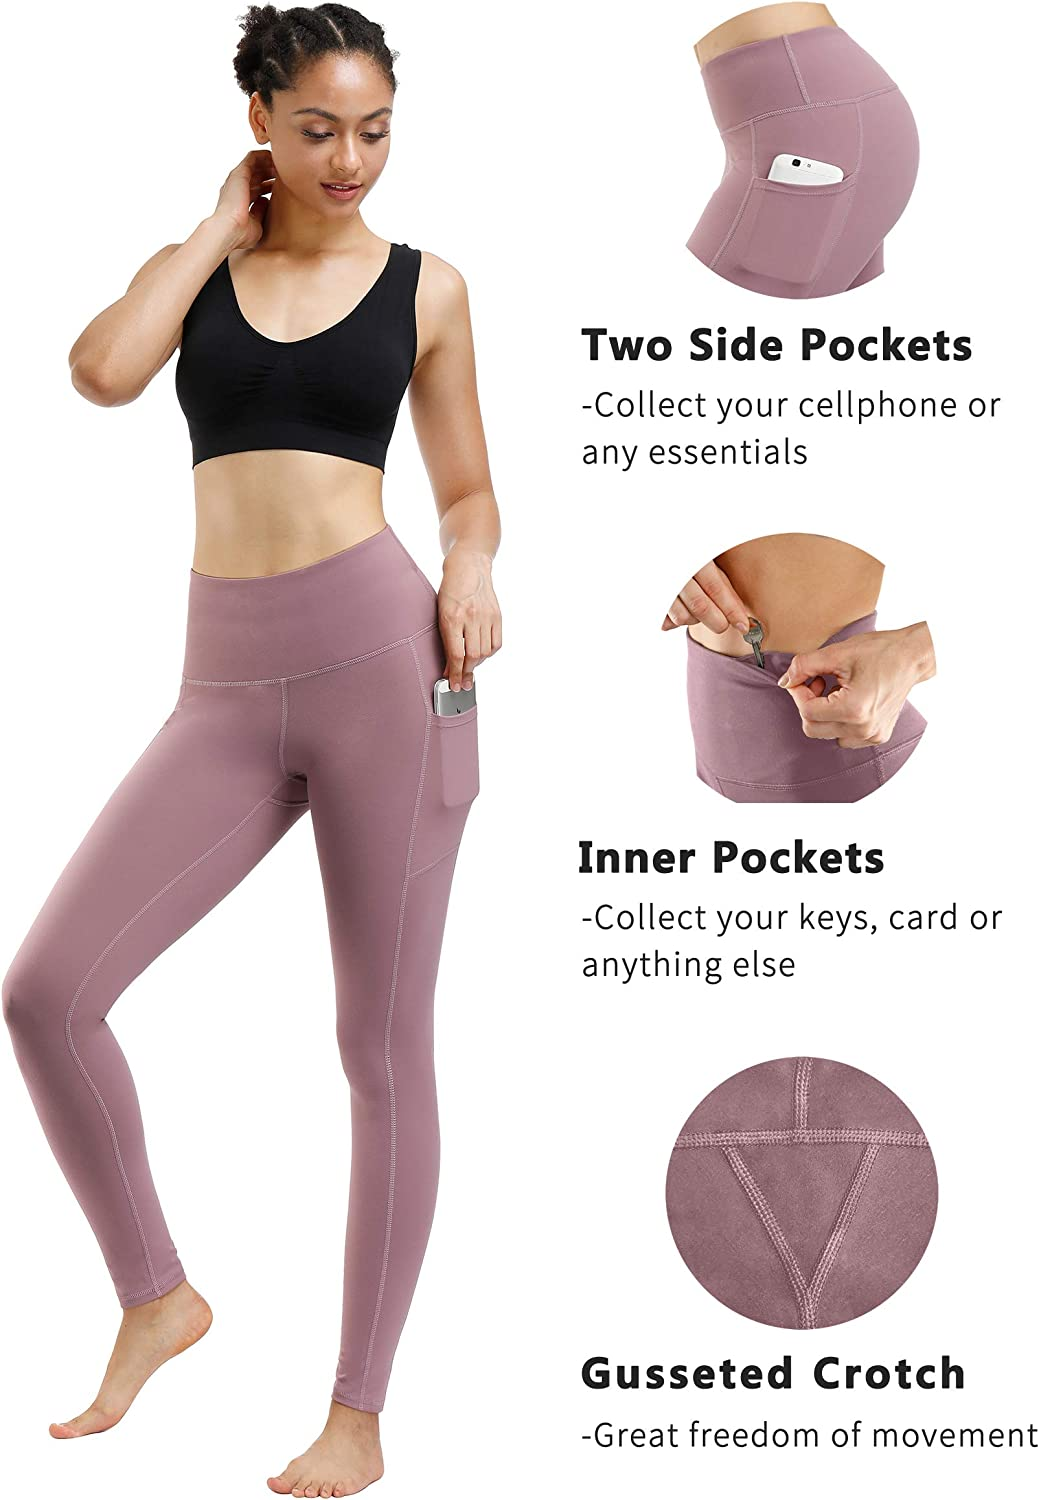 Fengbay 2 Pack High Waist Yoga Pants, Pocket Yoga Pants Tummy Control Workout Running 4 Way Stretch Yoga Leggings: Clothing